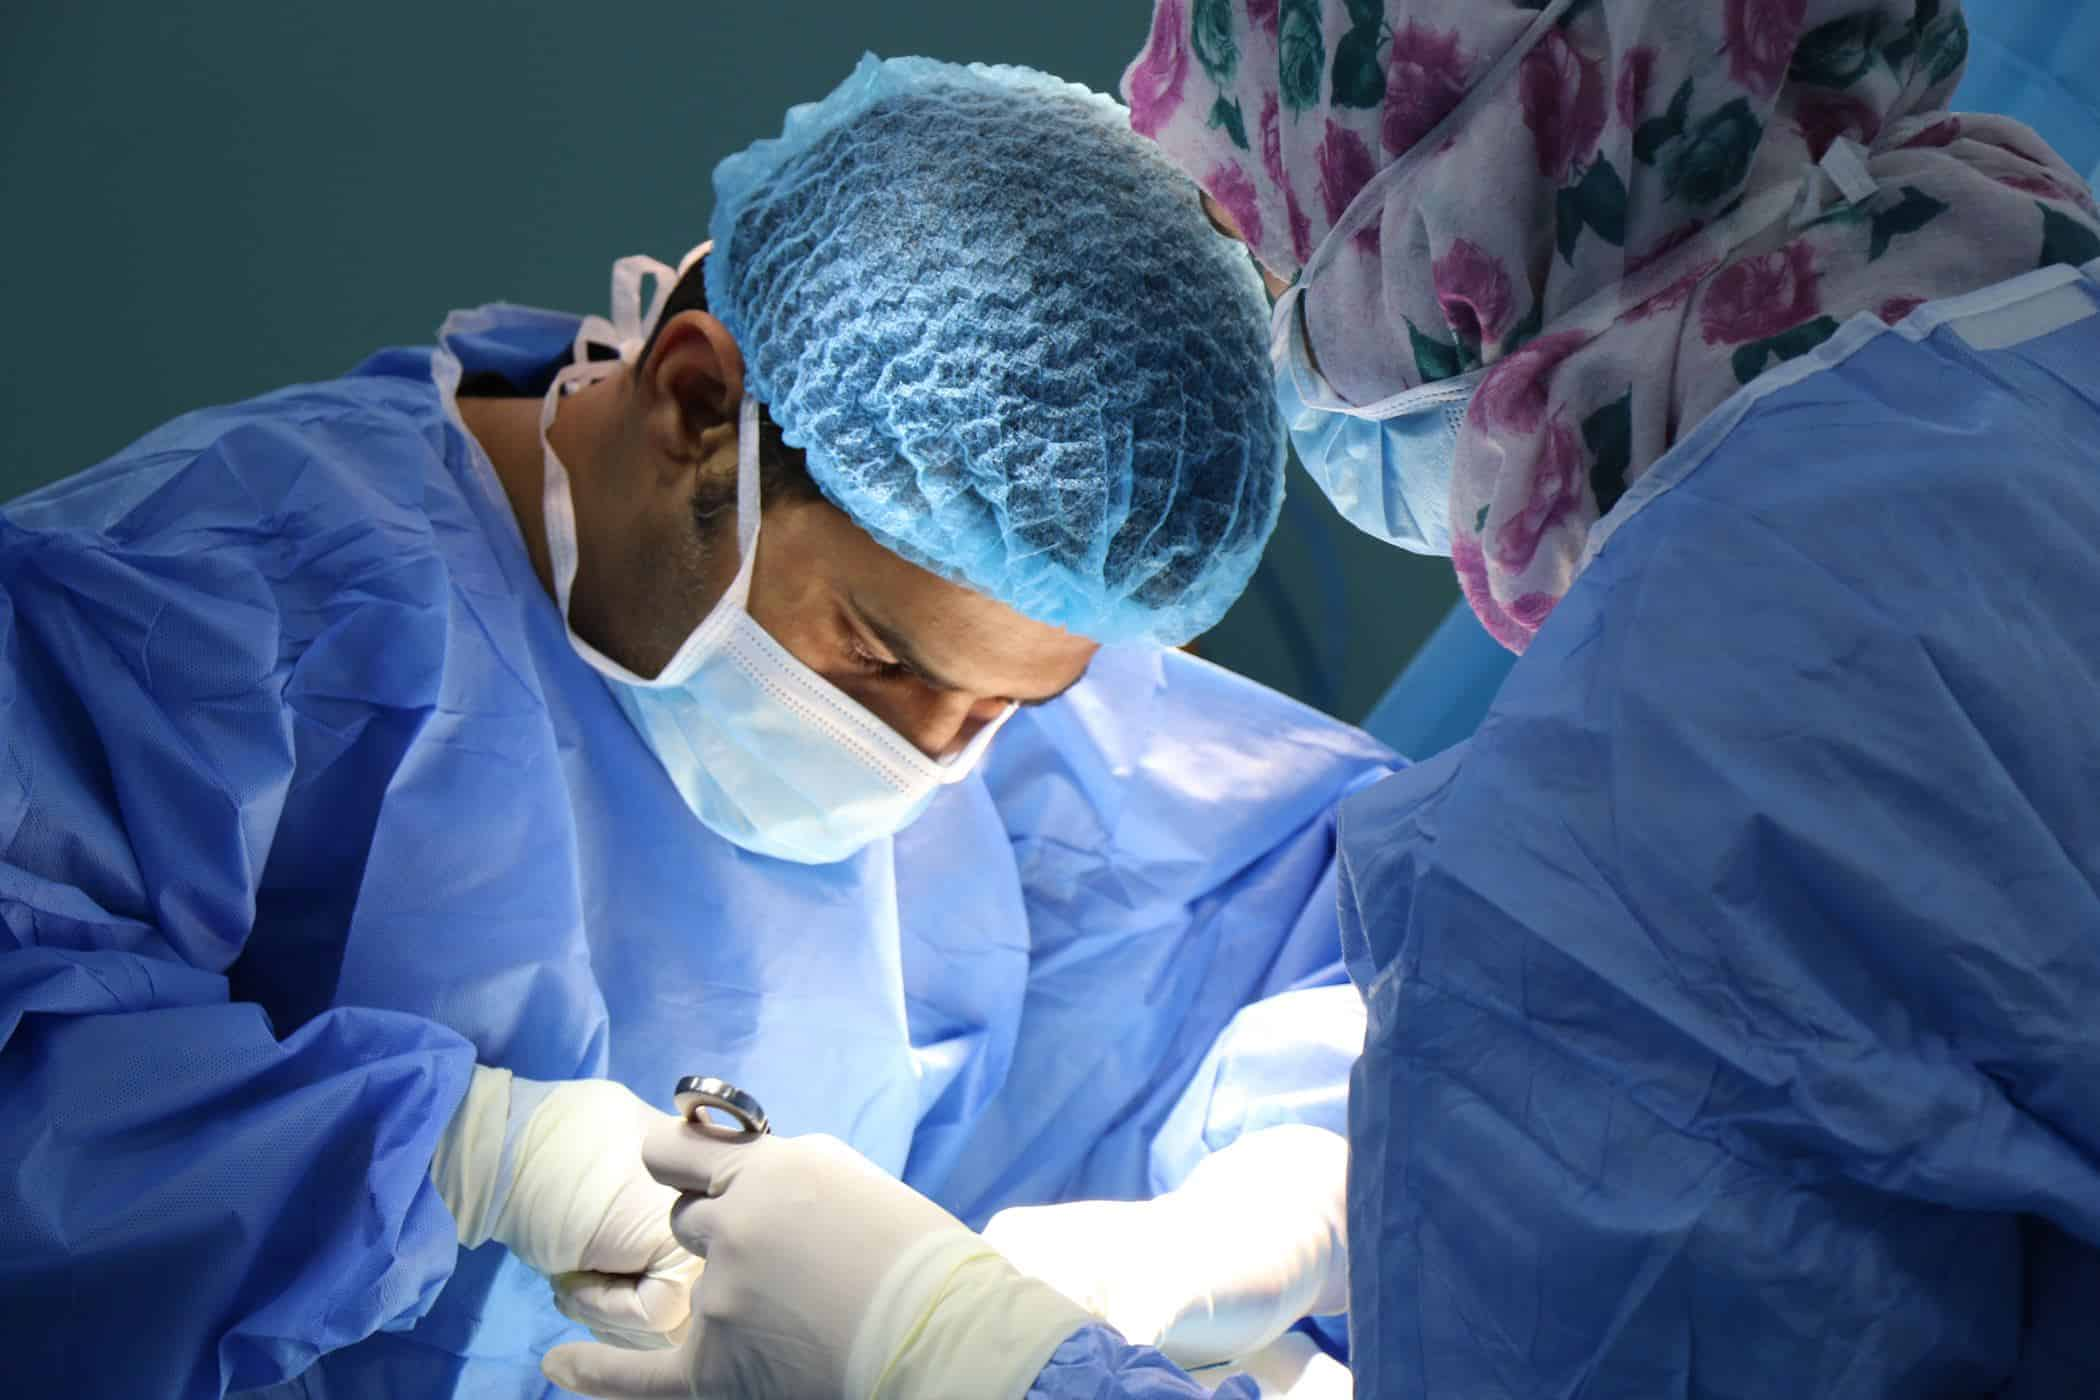 Doctor performing an operation.